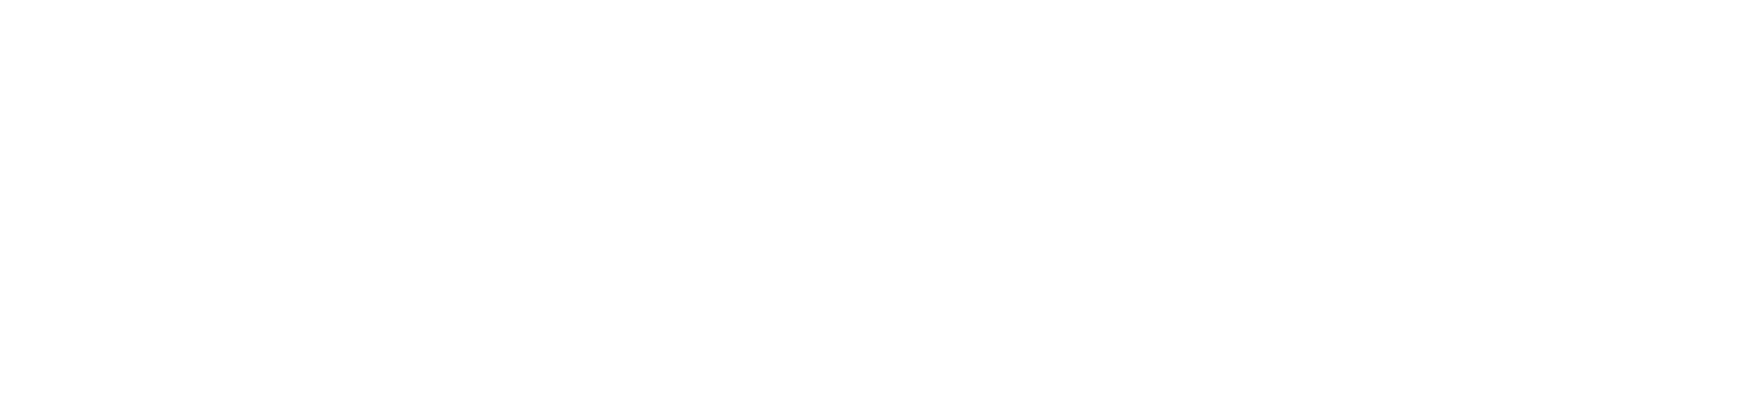 de - audio consulting group